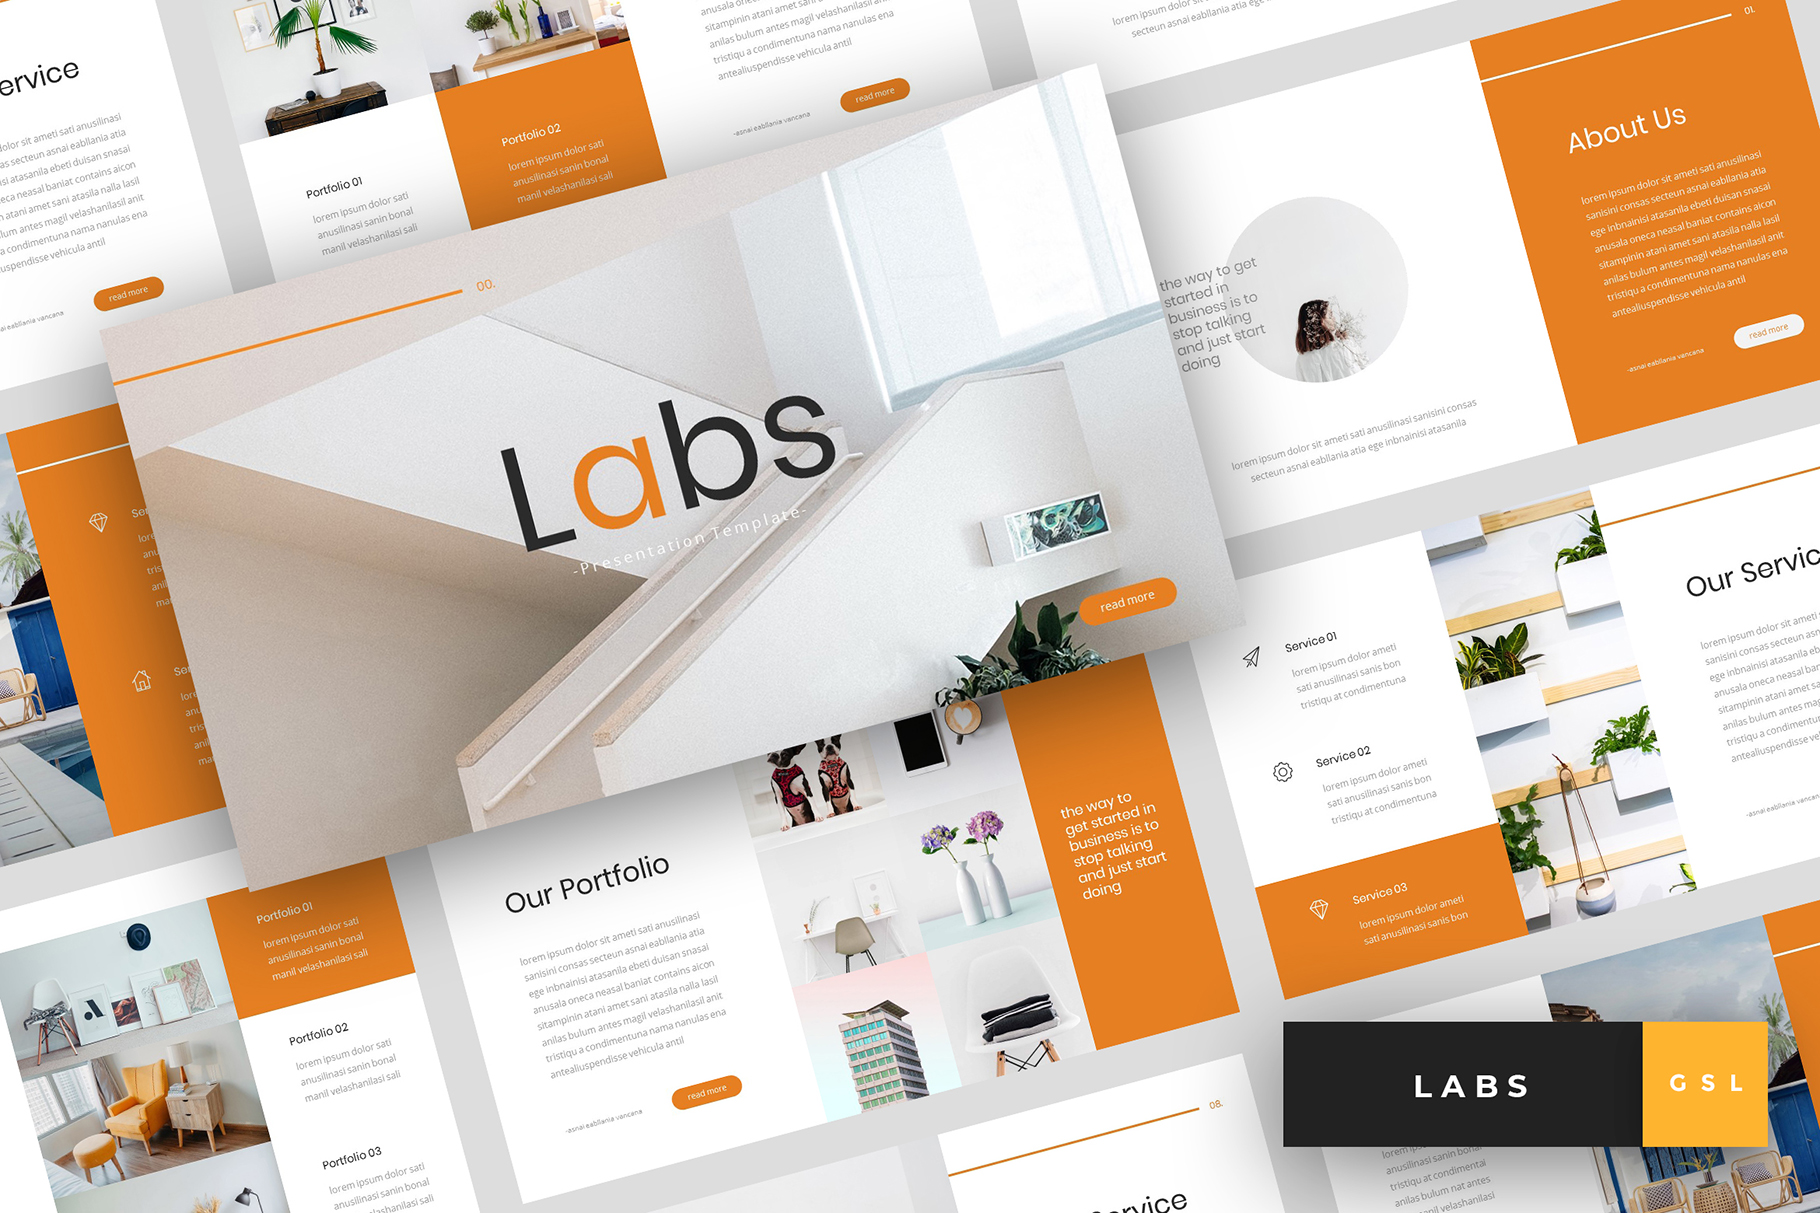 Labs - Creative Google Slides Template example image 1